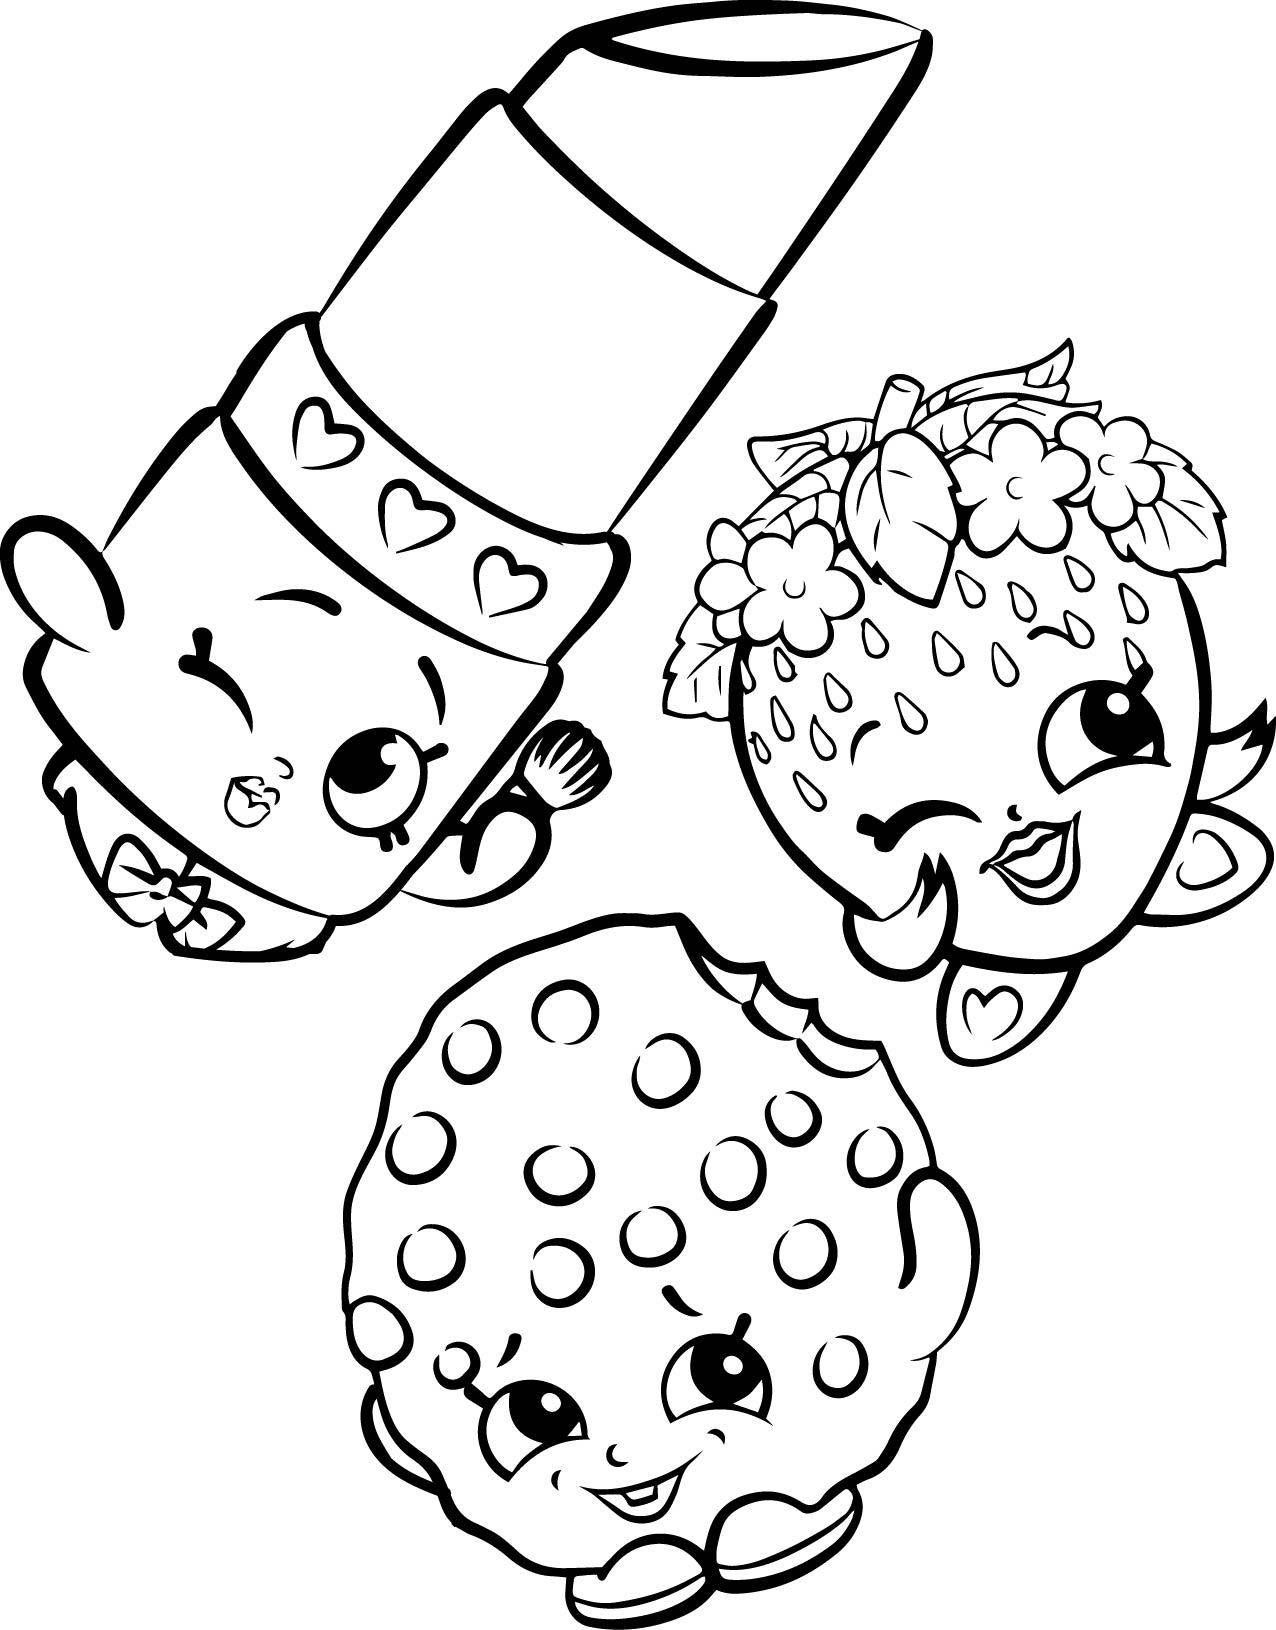 Free Shopkins Coloring Pages Images besides shopkins coloring pages free download printable on coloring pages shopkins further shopkins coloring pages getcoloringpages  on coloring pages shopkins along with shopkins coloring pages best coloring pages for kids on coloring pages shopkins further shopkins coloring pages best coloring pages for kids on coloring pages shopkins